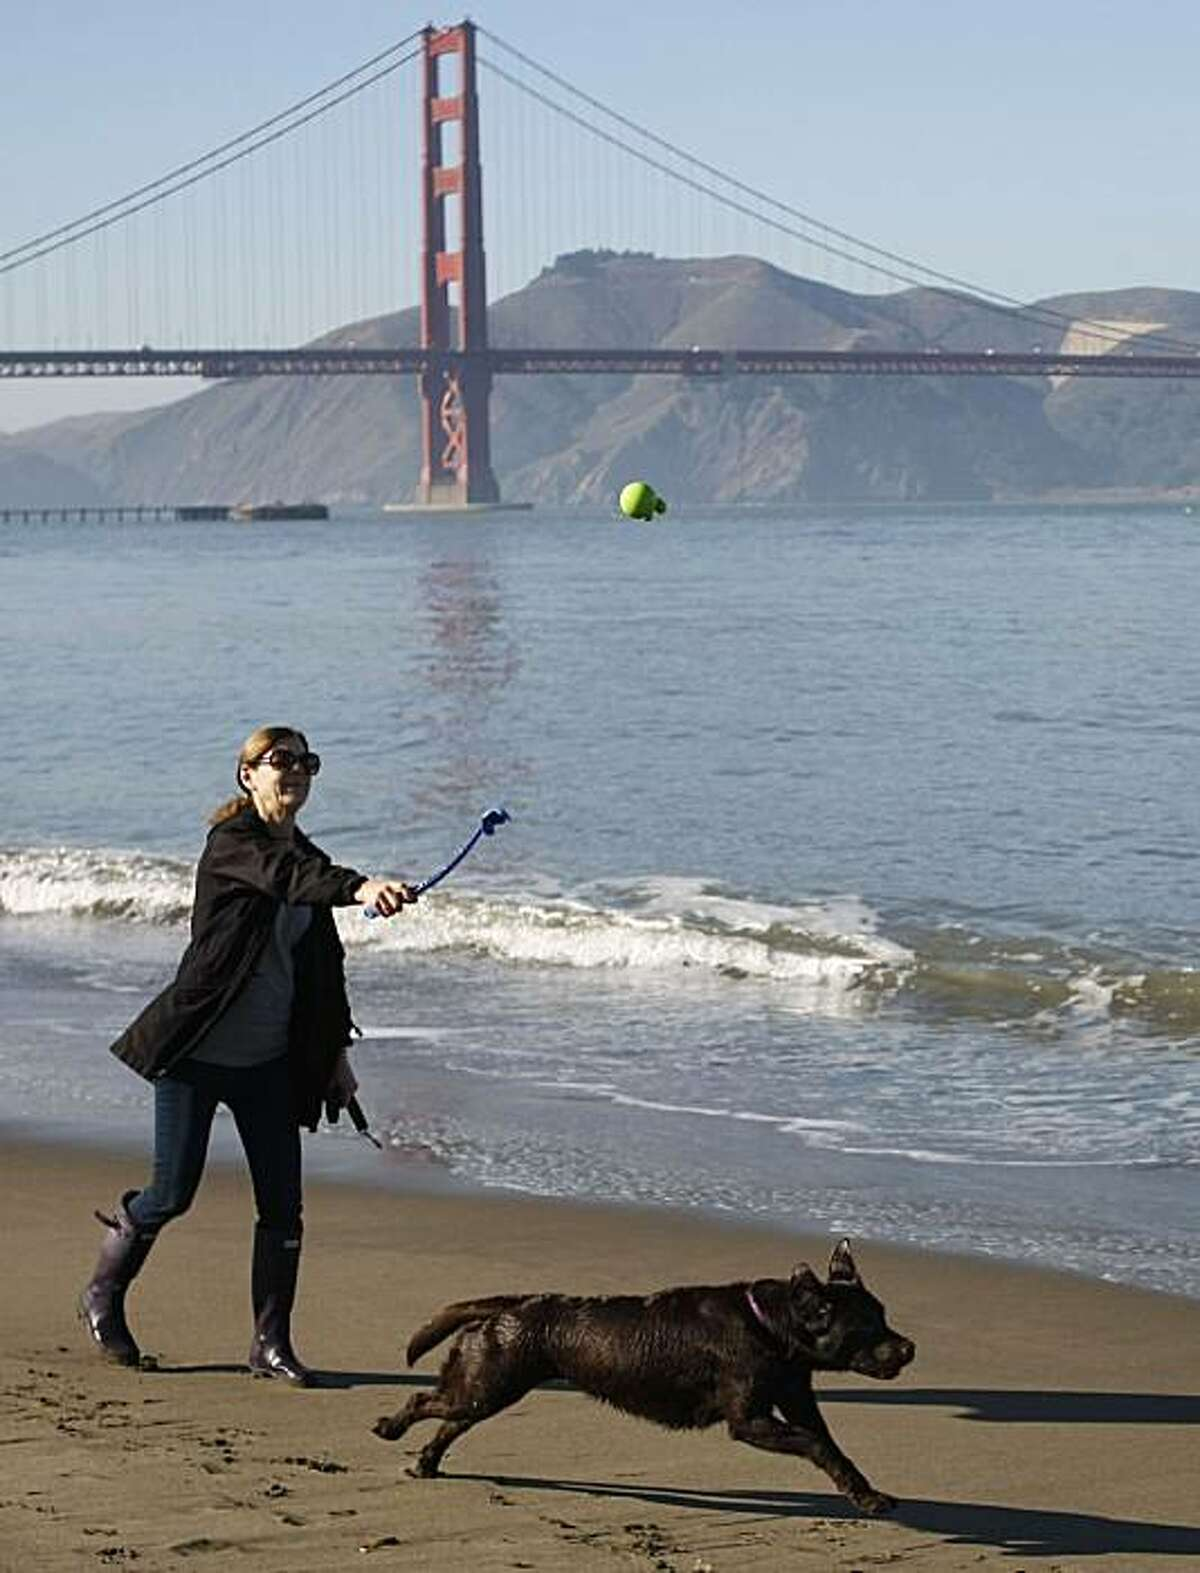 Kathy McCorkie plays fetch with her 3-year-old labrador retriever Charlotte at Crissy Field, part of the Golden Gate National Recreation Area in San Francisco Calif. on Friday, Jan. 21, 2011. McCorkie says she takes Charlotte to off leash areas at least three times a week and pays a professional dog walker to take her out an additional two days.